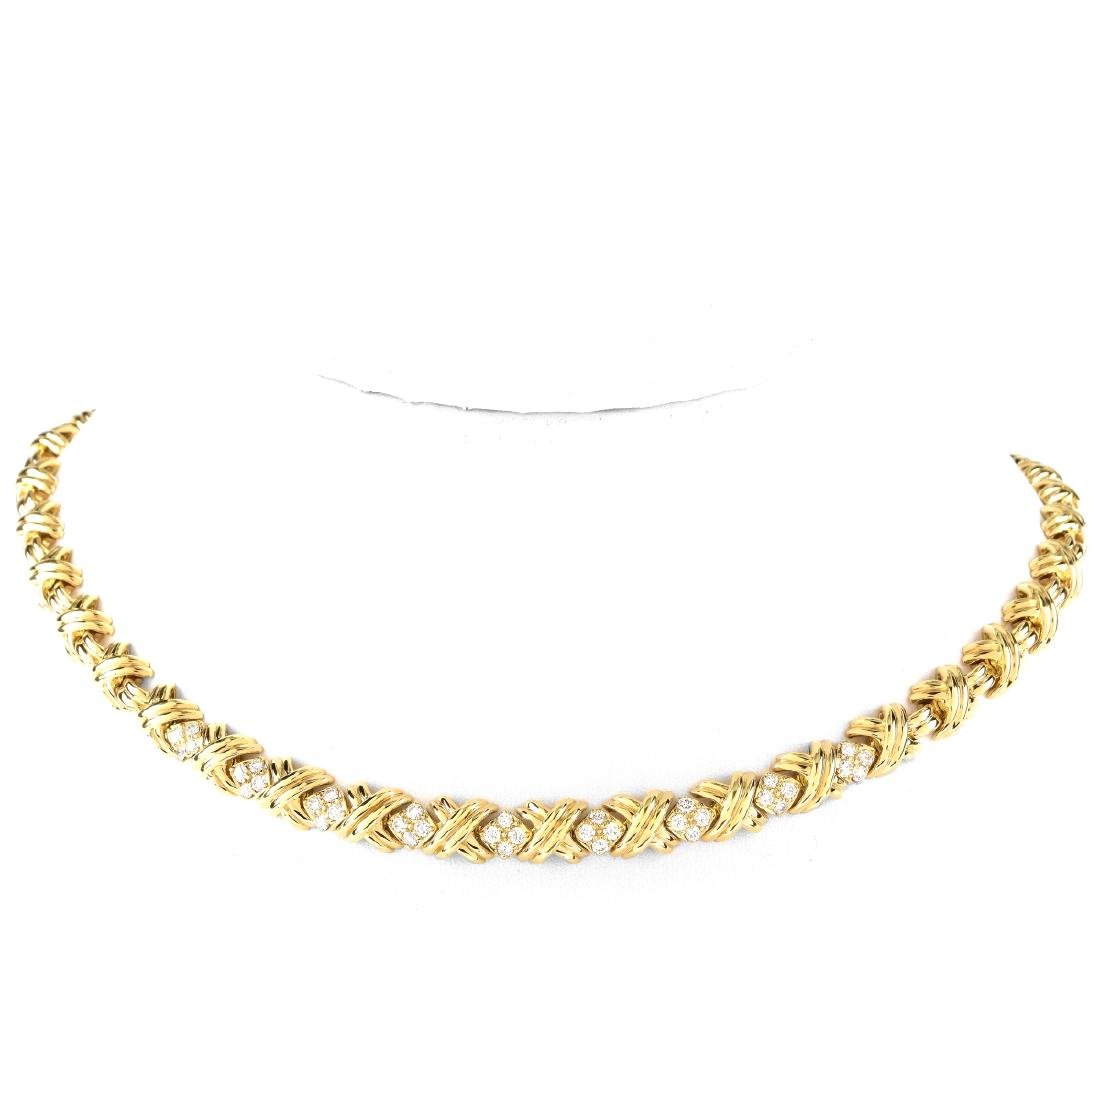 Tiffany & Co Diamond and 18K Gold X Necklace